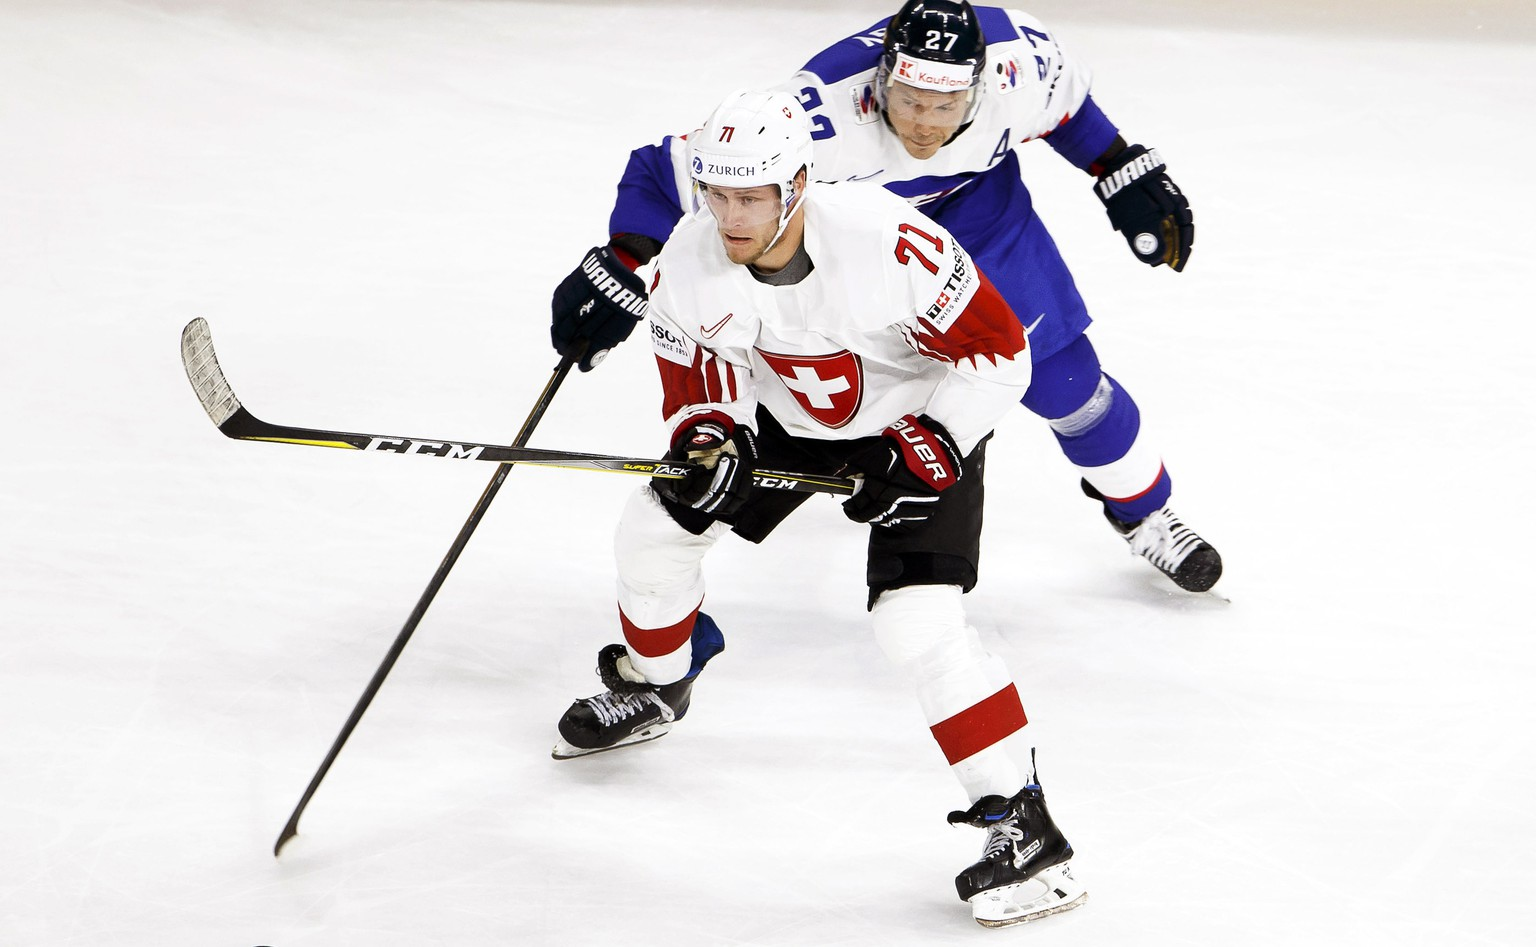 epa06715813 Switzerland's forward Enzo Corvi (front) in action against Slovakia's forward Ladislav Nagy (back) during the IIHF World Championship Group A ice hockey match between Slovakia and Switzerland at the Royal Arena in Copenhagen, Denmark, 06 May 2018.  EPA/SALVATORE DI NOLFI